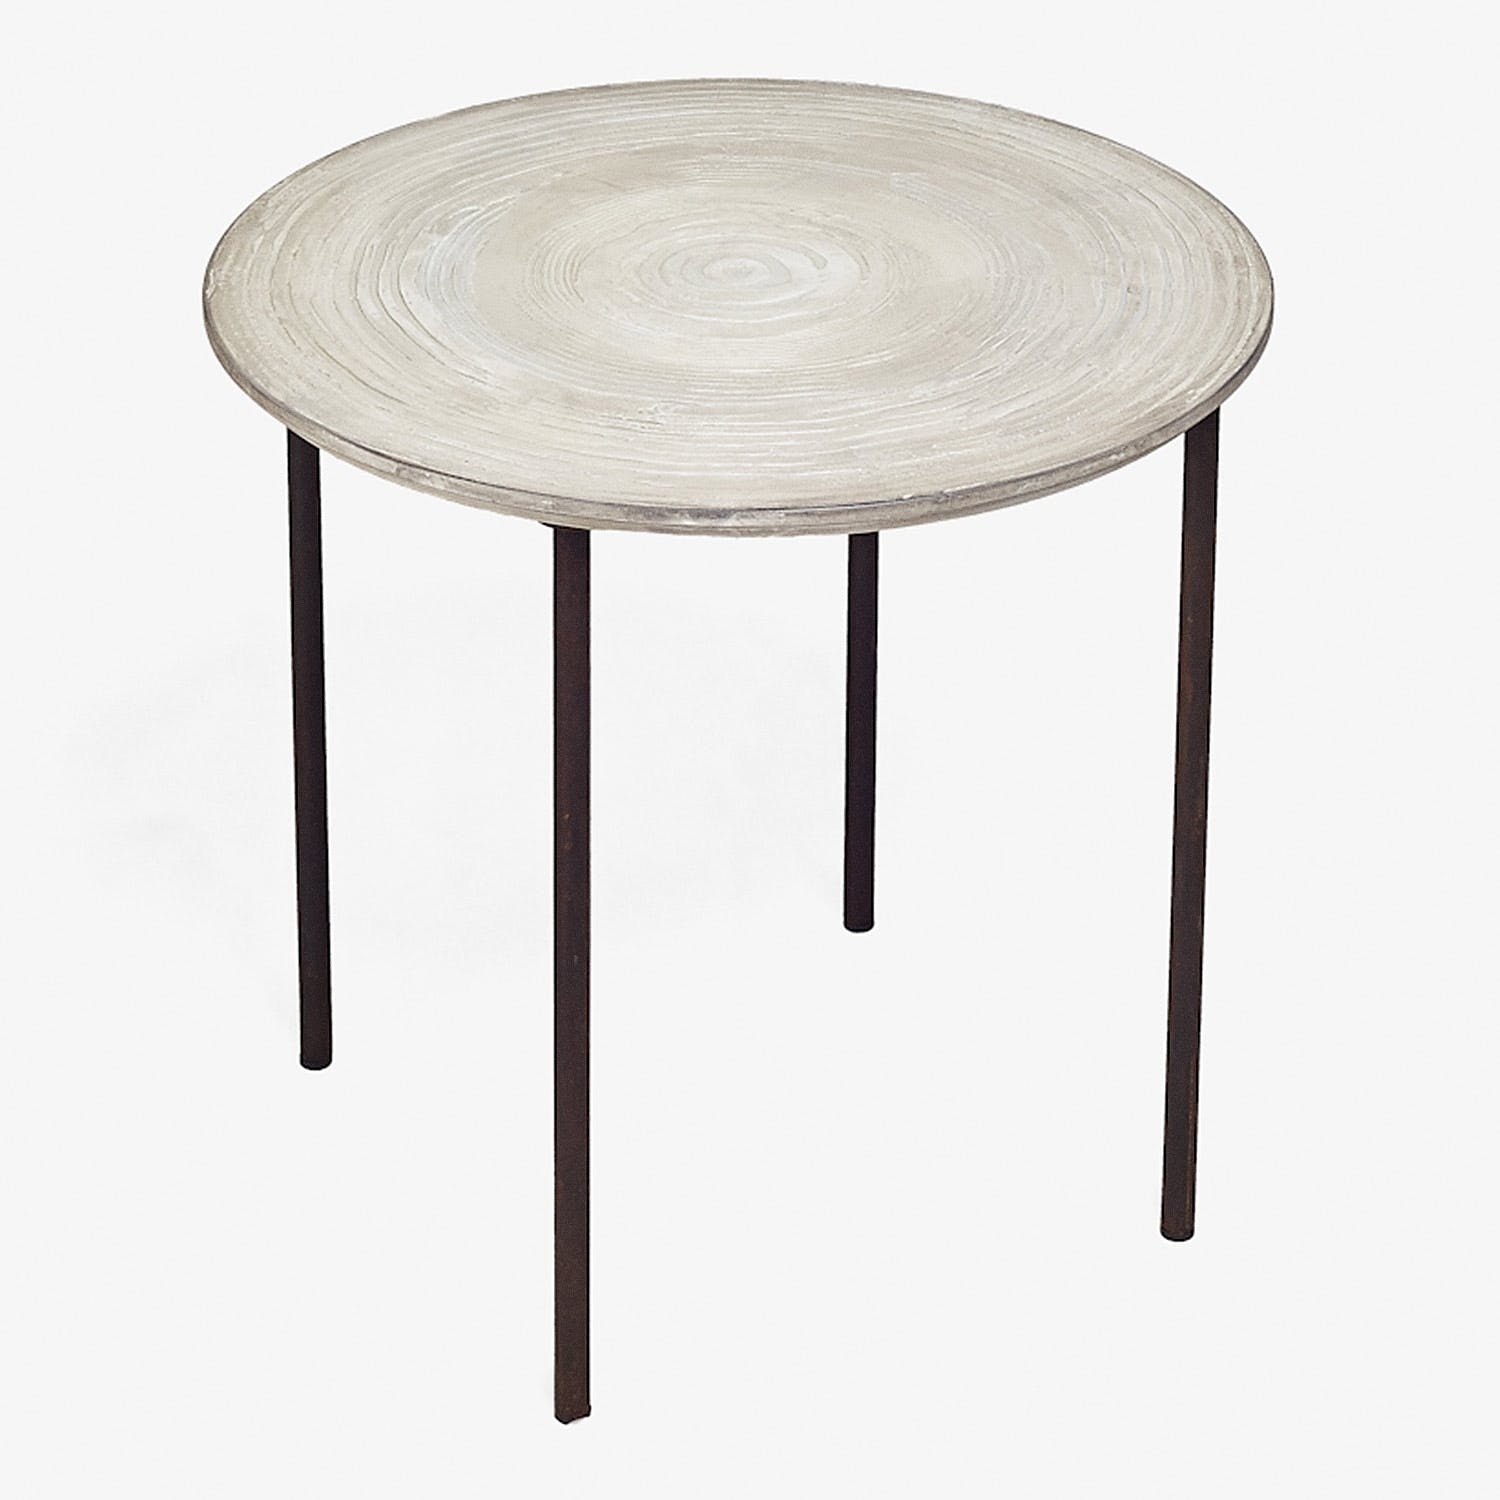 Product Image - Mos Design Side Table Sand